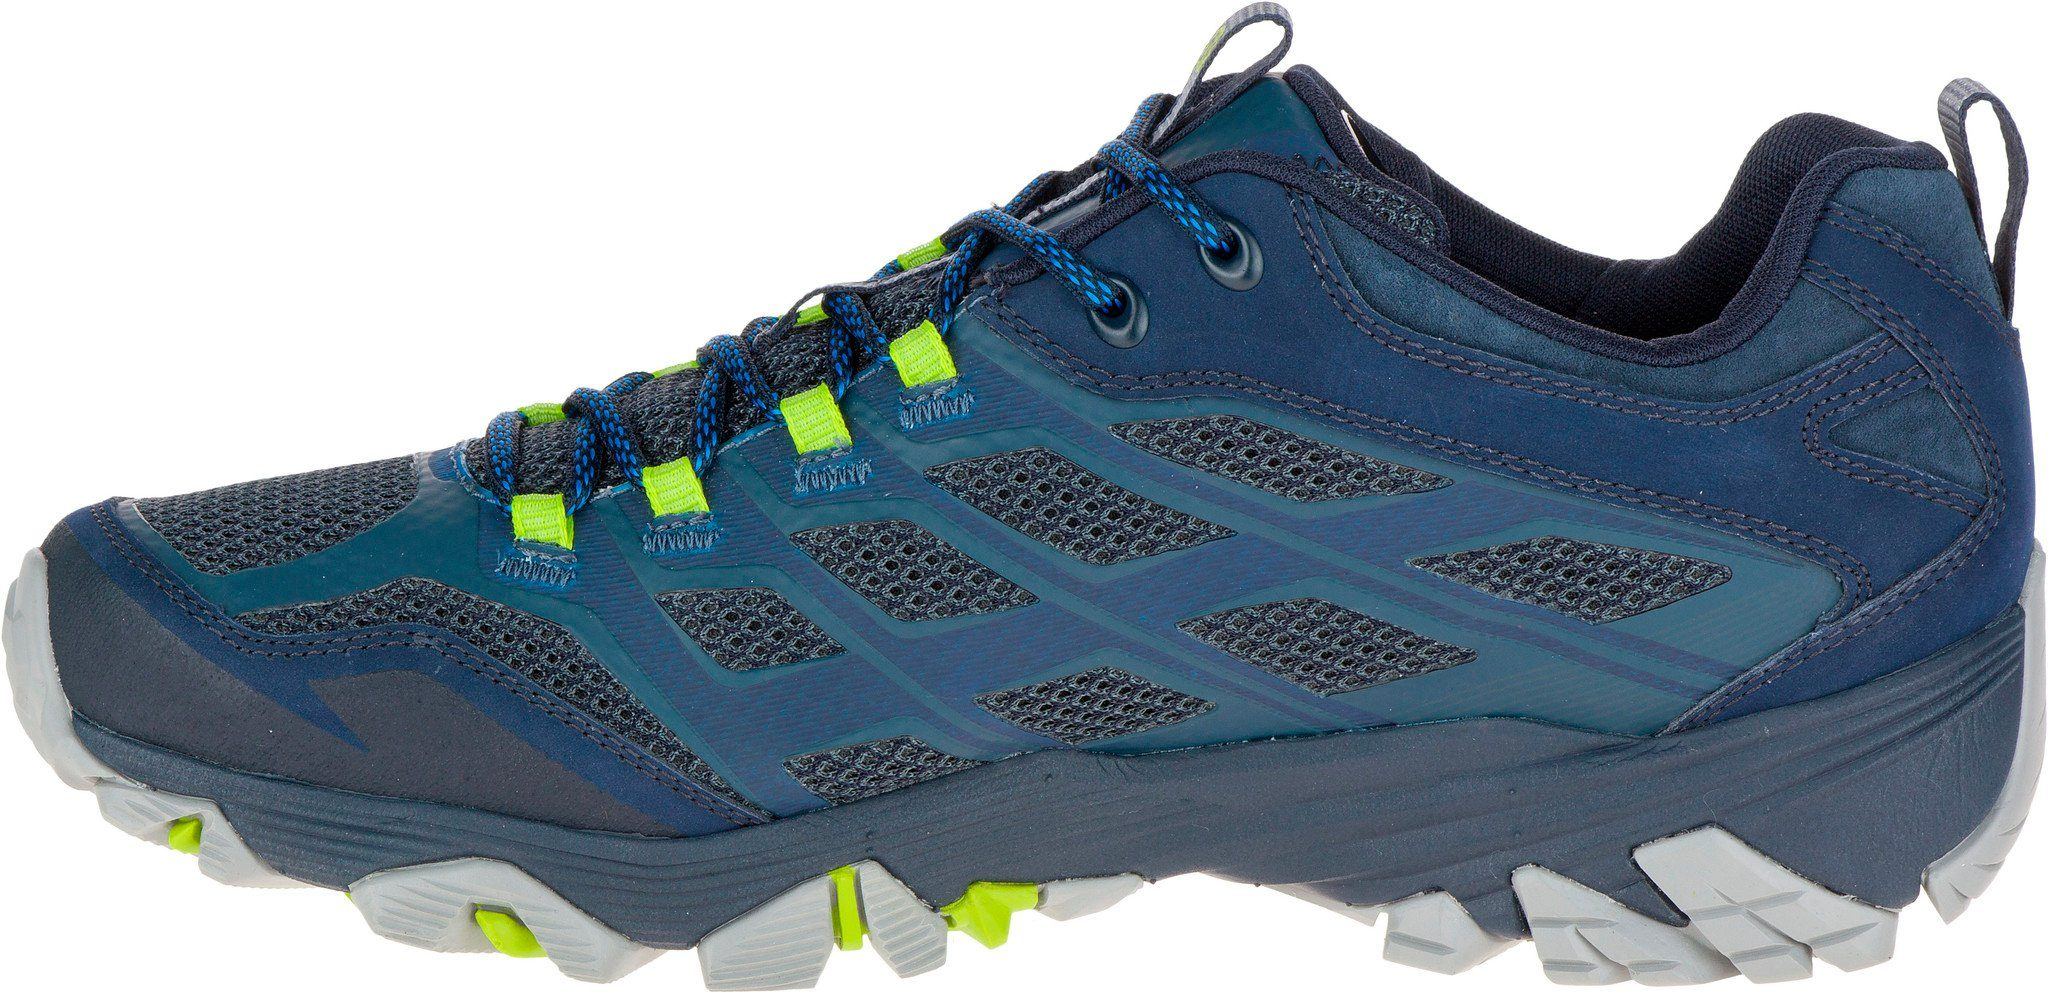 Merrell Kletterschuh Moab FST GTX Shoes Men  blau